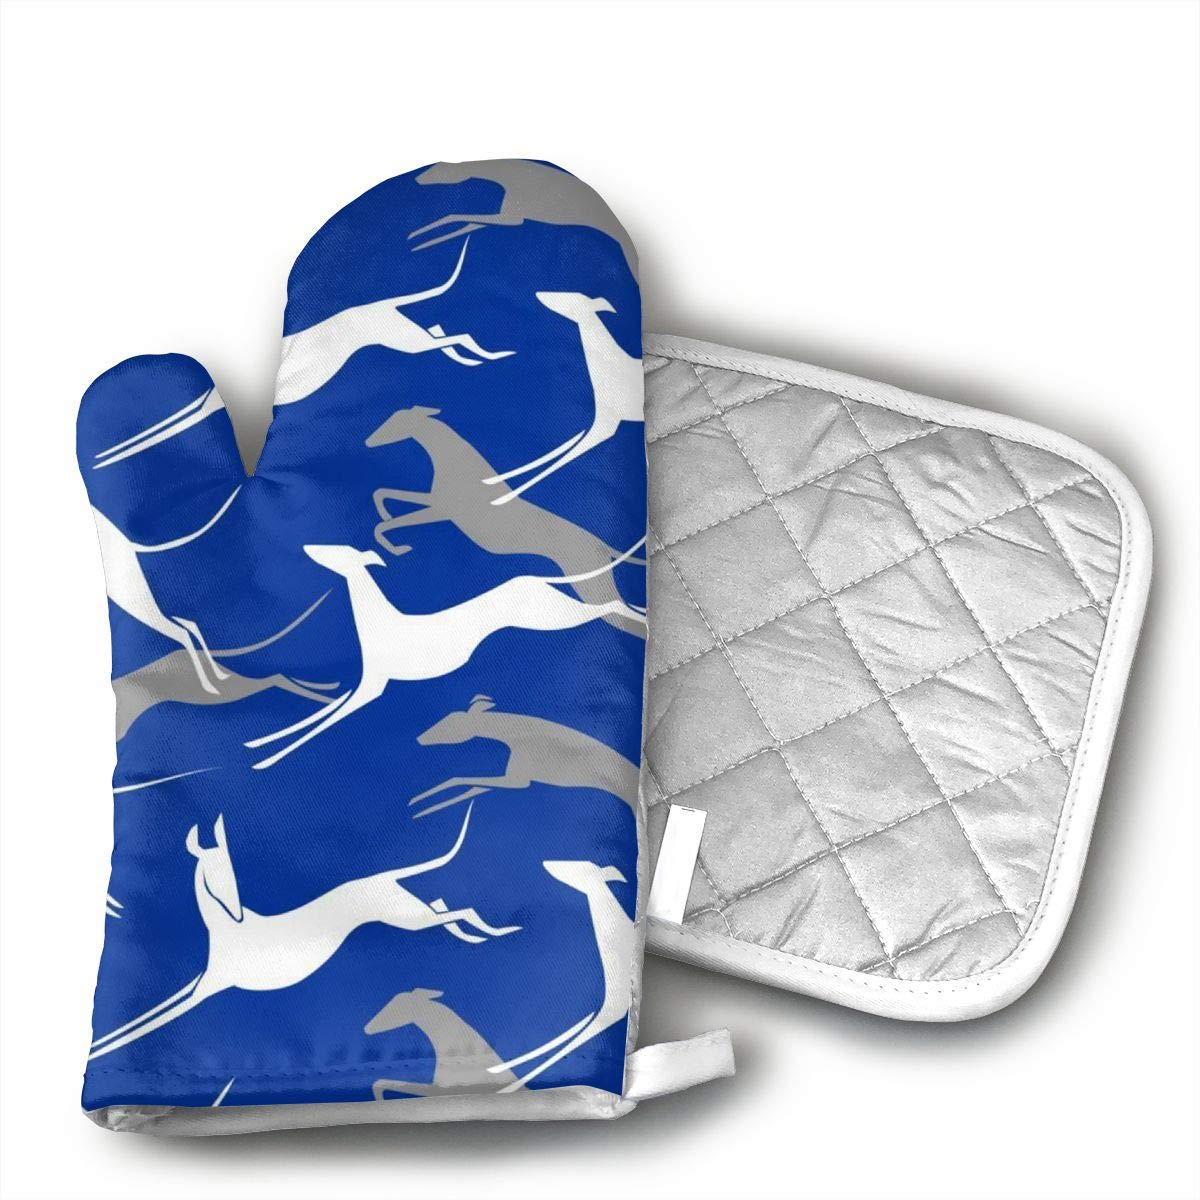 Klasl5 Jumping Greyhounds Blue Oven Mitts,Heat Resistant Oven Gloves,Non-Slip Cooking Gloves,Washable Kitchen Mitts for Baking, Barbecue.